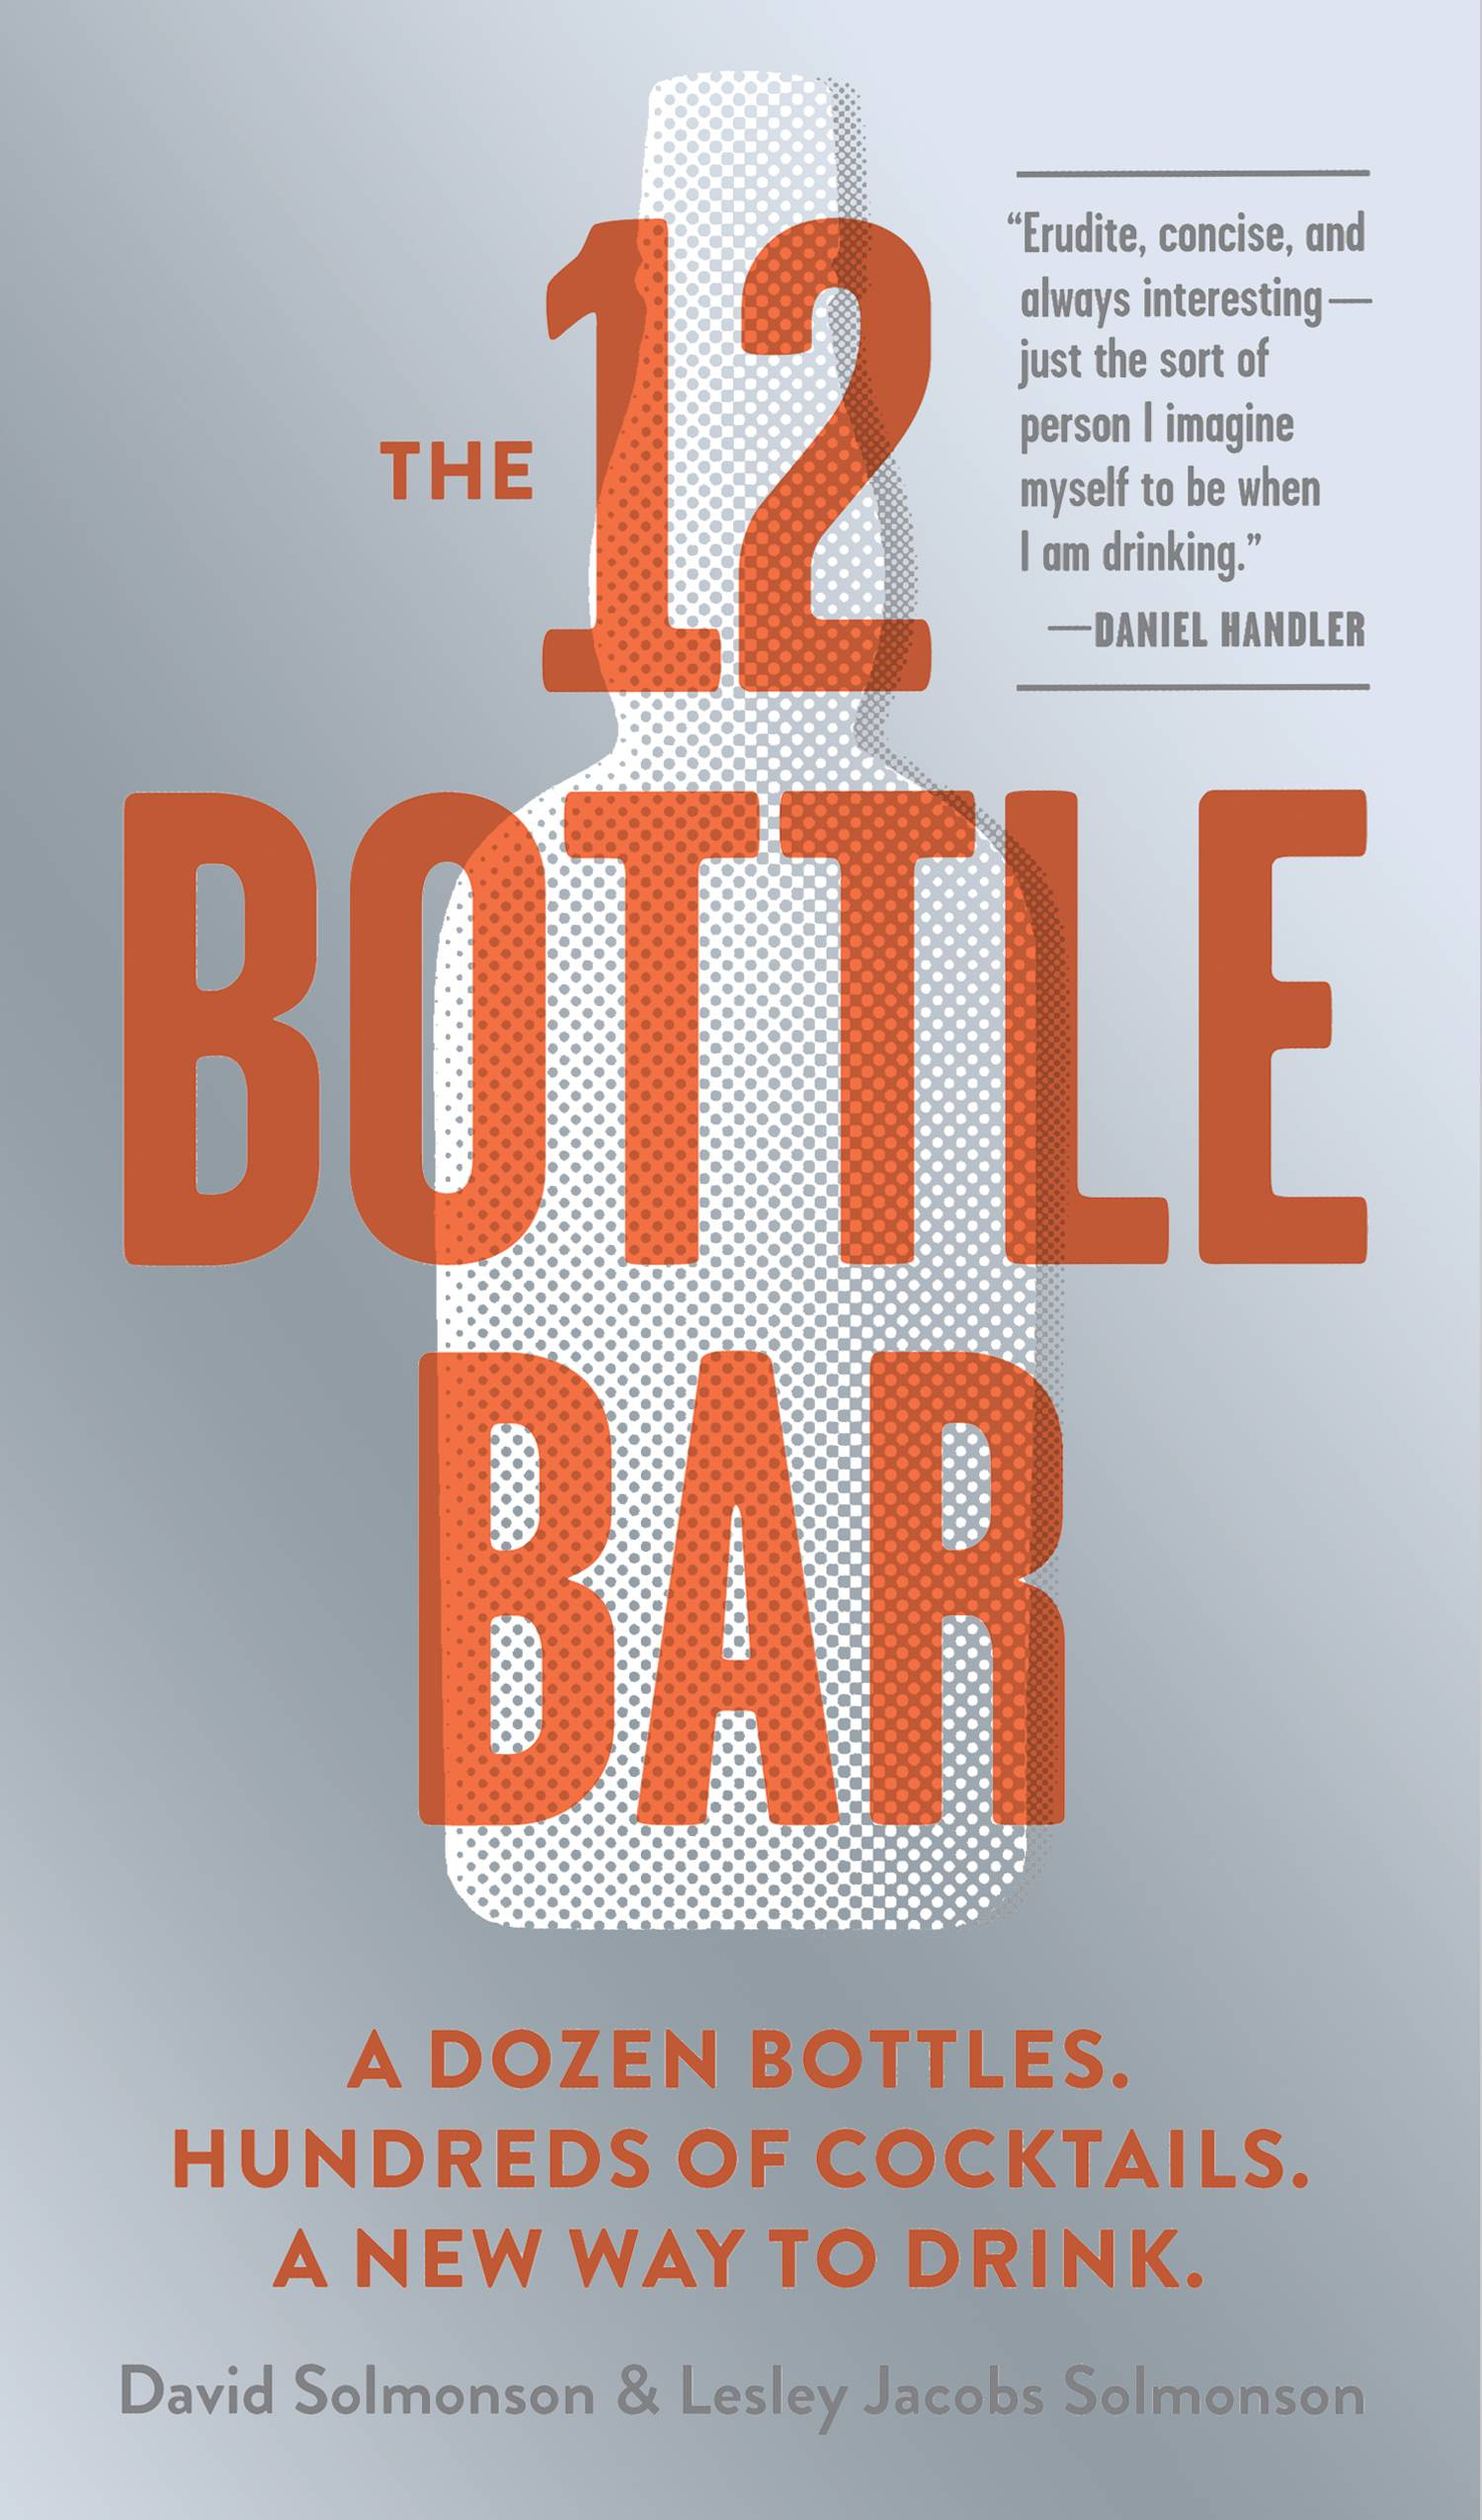 """The 12 Bottle Bar"" by Lesley Jacobs Solmonson and David Solmonson."